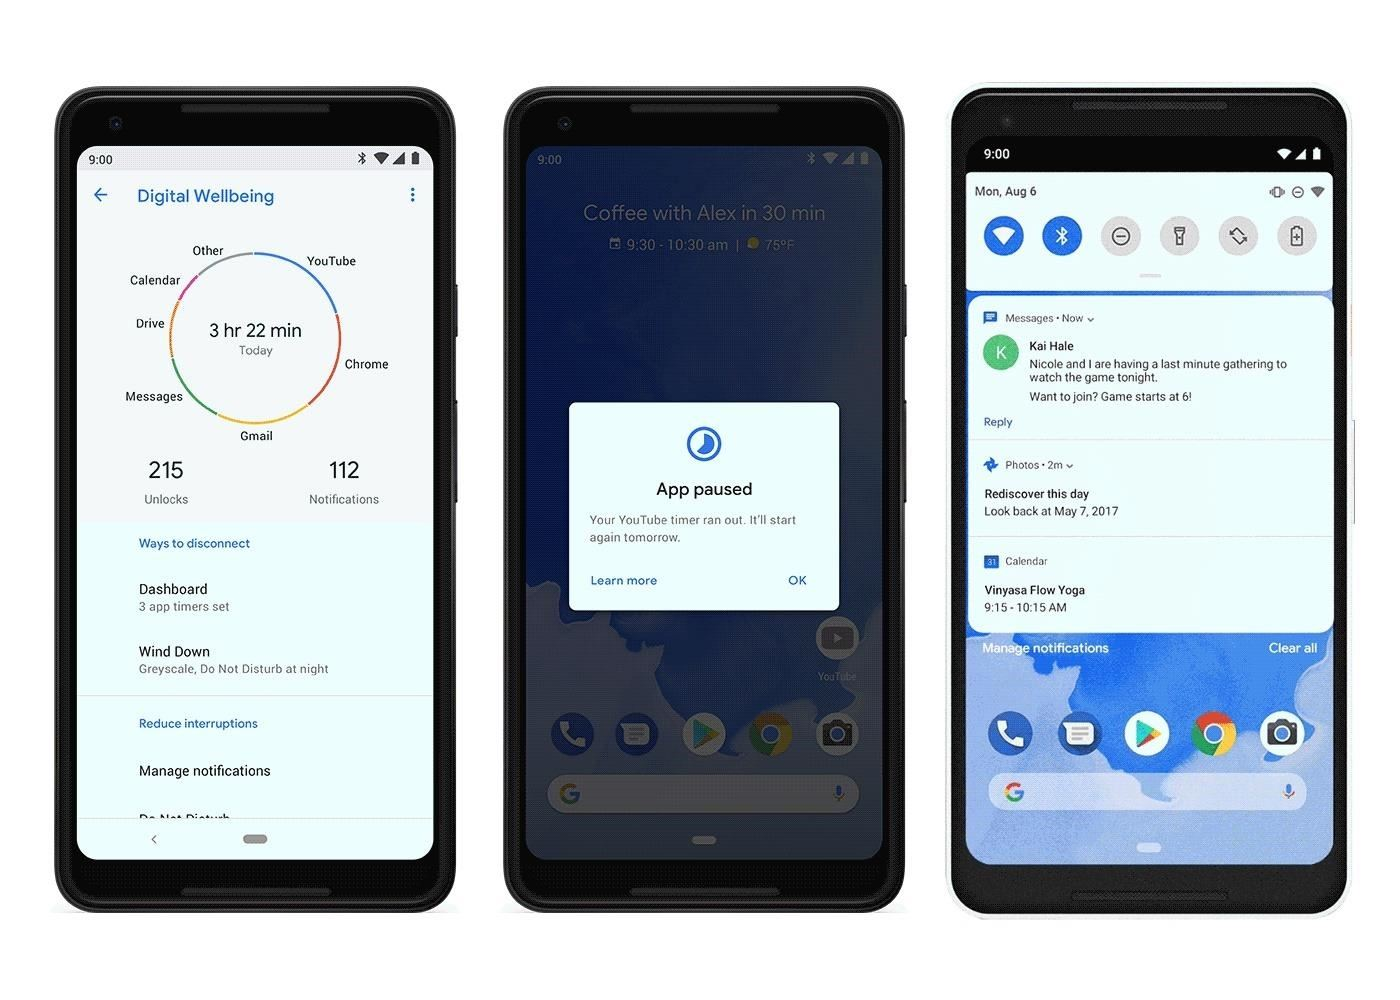 How to Get Digital Well-Being in Android 9.0 Pie on Your Pixel